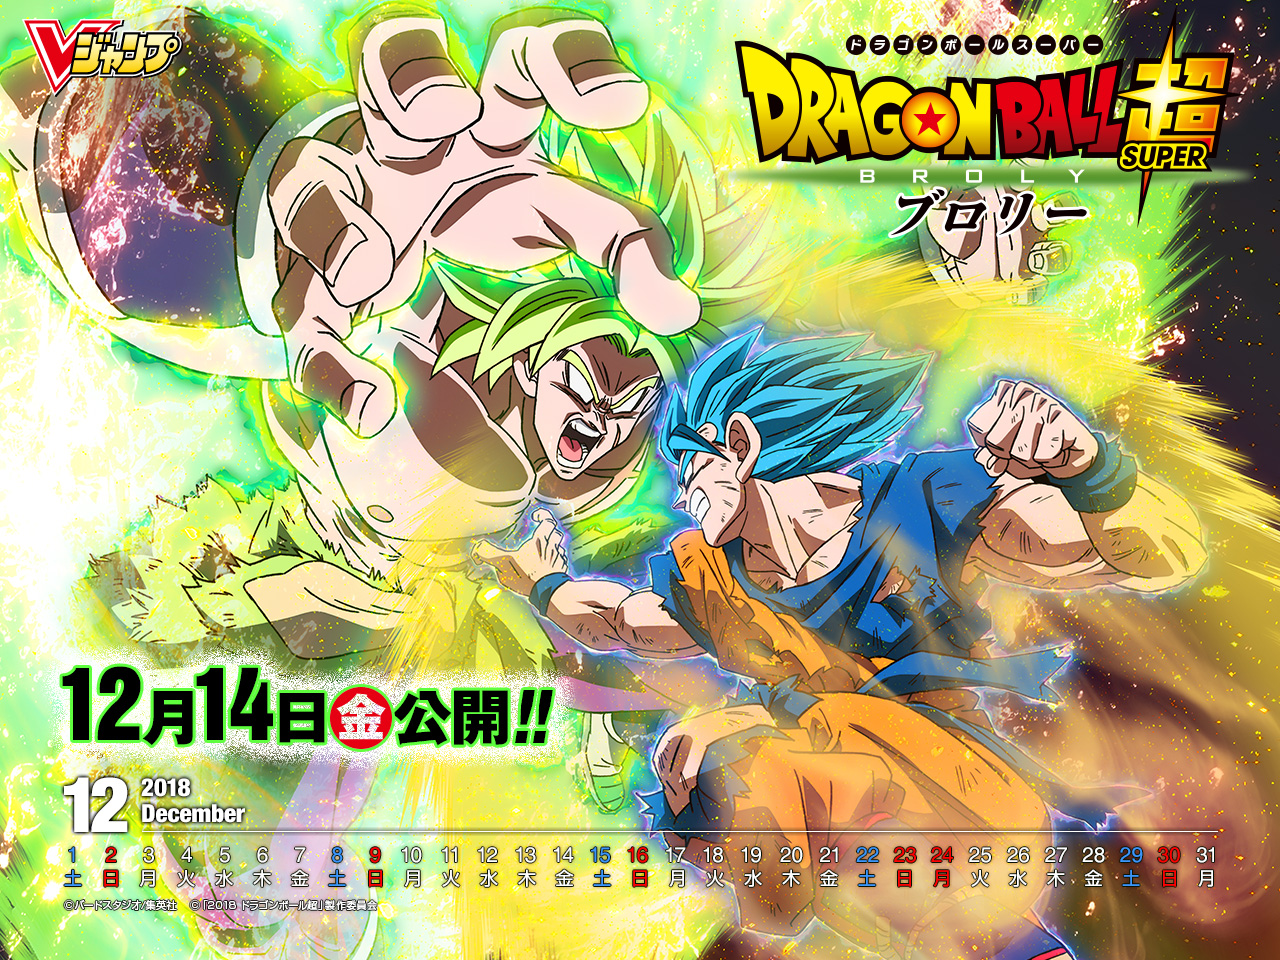 Free Download Dragon Ball Super Broly Wallpaper 2432257 Zerochan Anime Image 1280x960 For Your Desktop Mobile Tablet Explore 23 Dragon Ball Super Broly Wallpapers Dragon Ball Super Broly Wallpapers